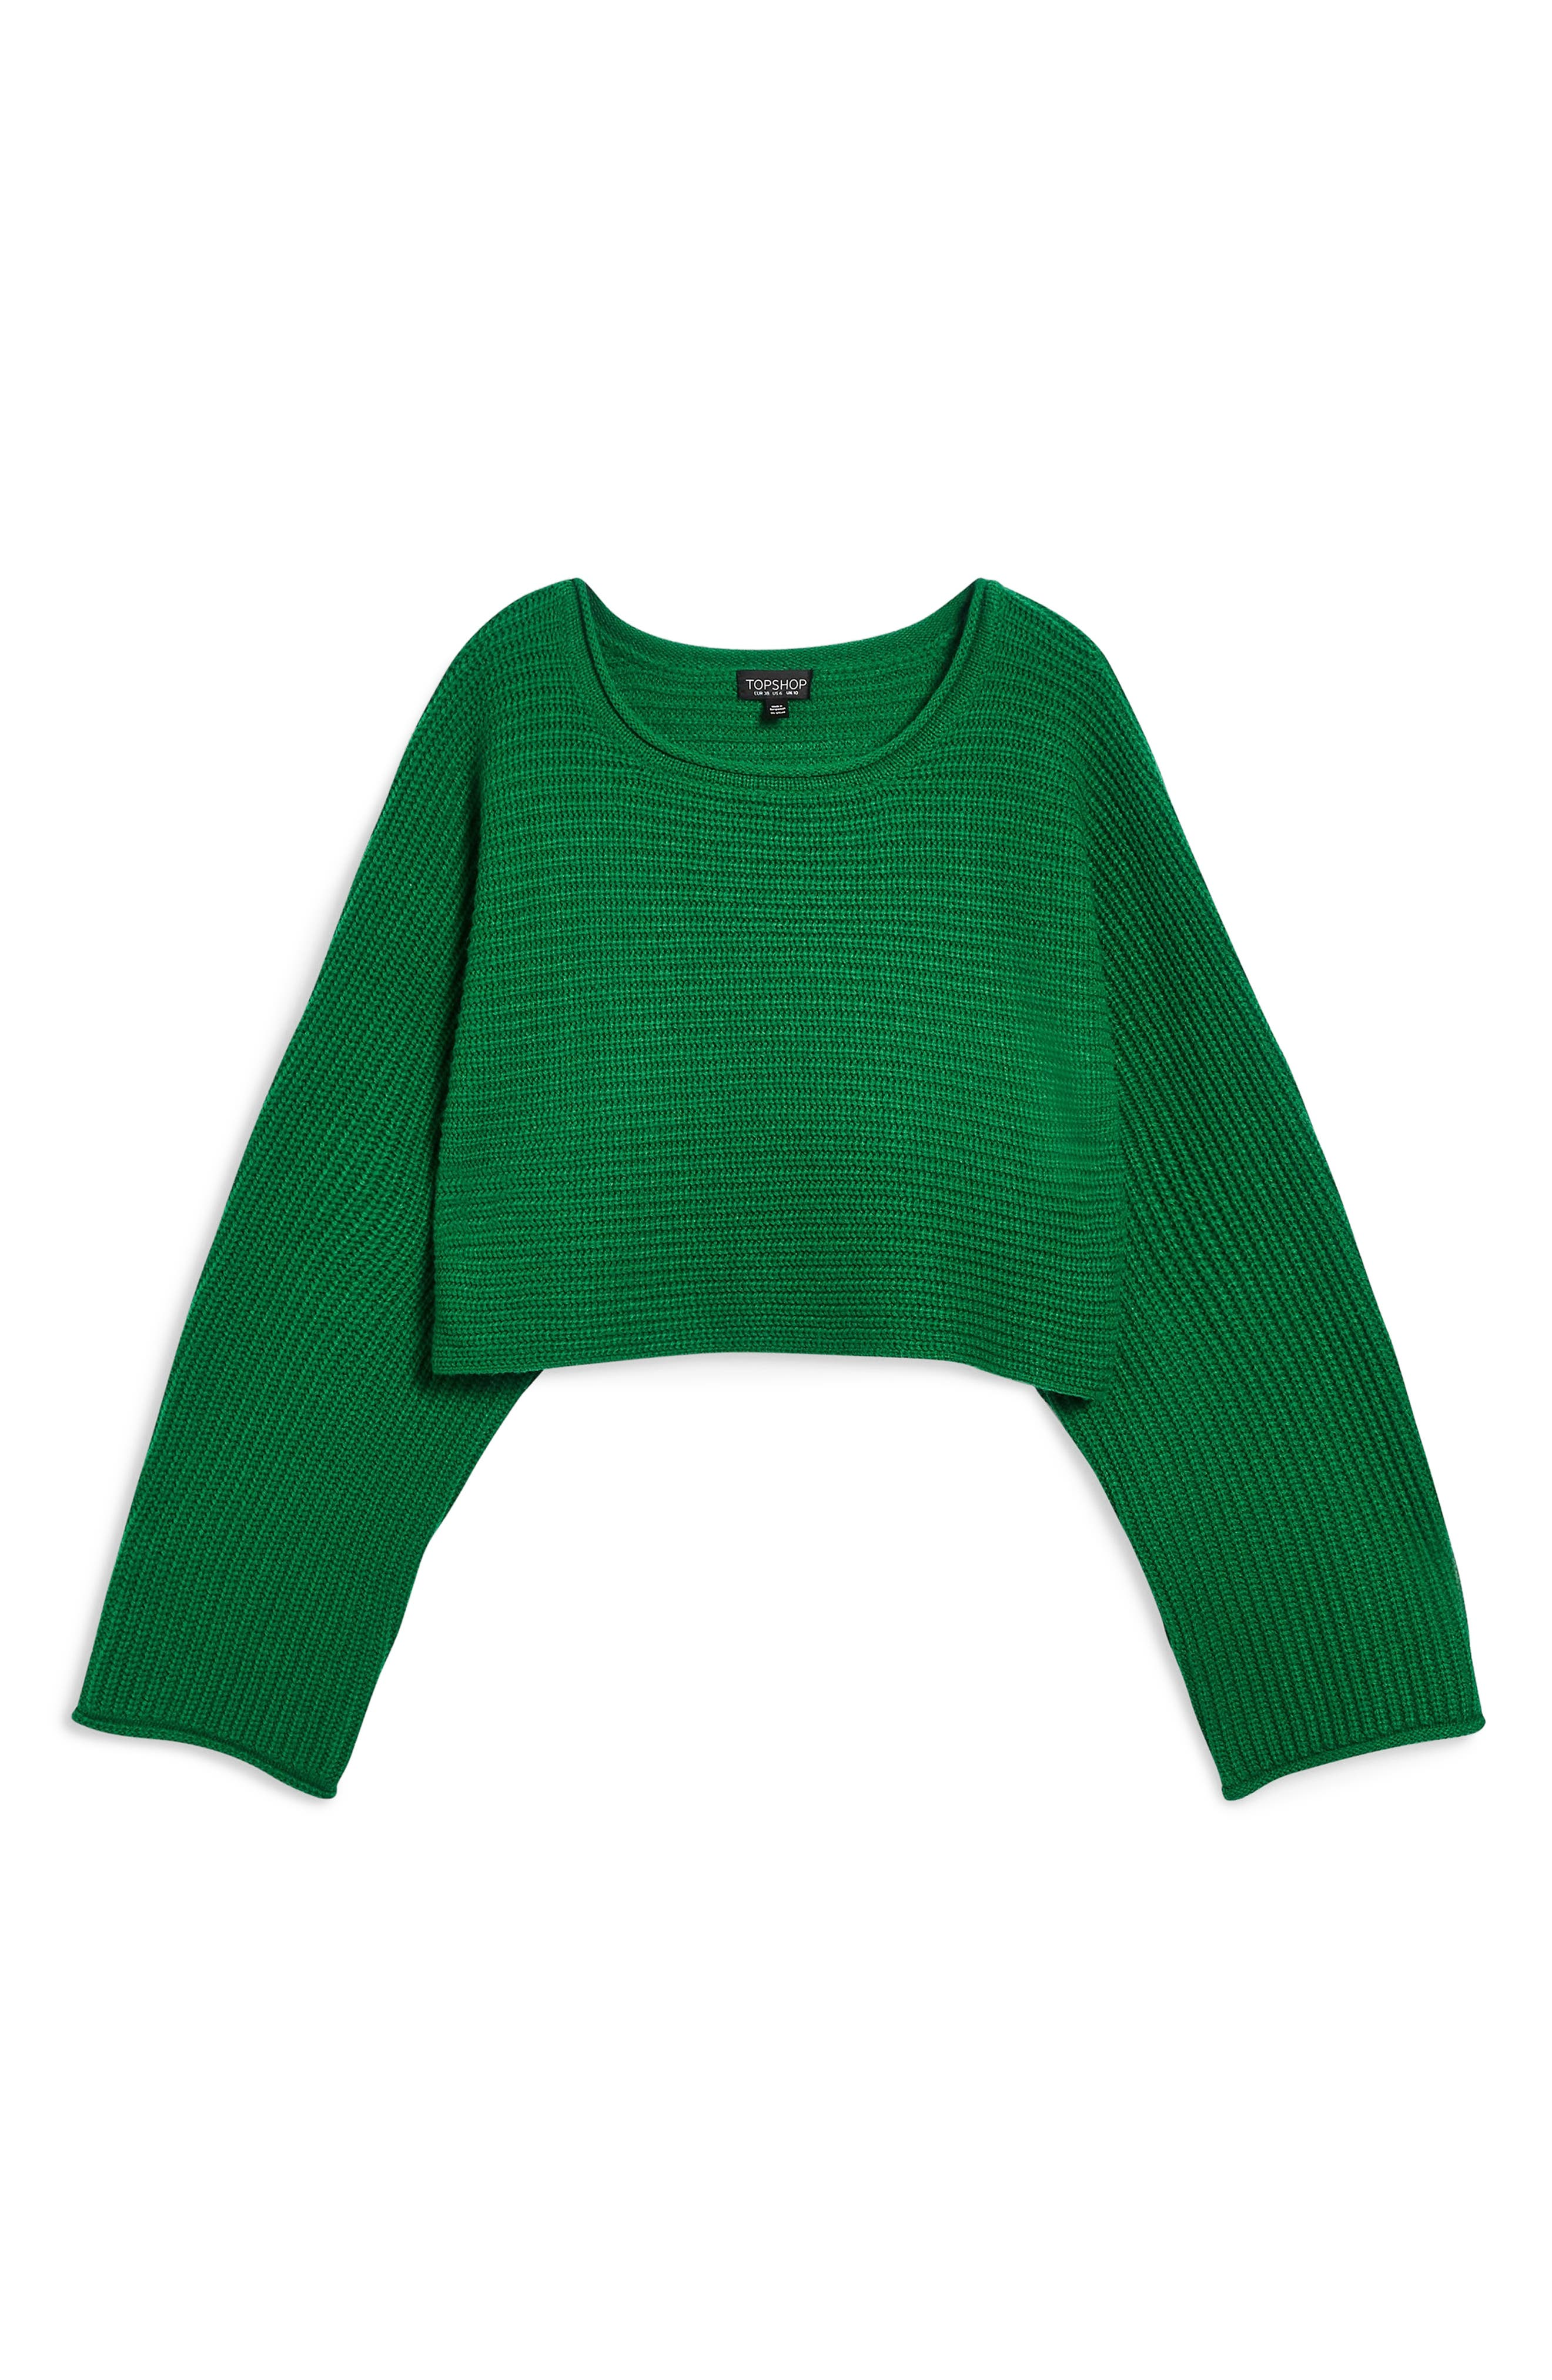 TOPSHOP, Roll Edge Crop Sweater, Alternate thumbnail 4, color, 300